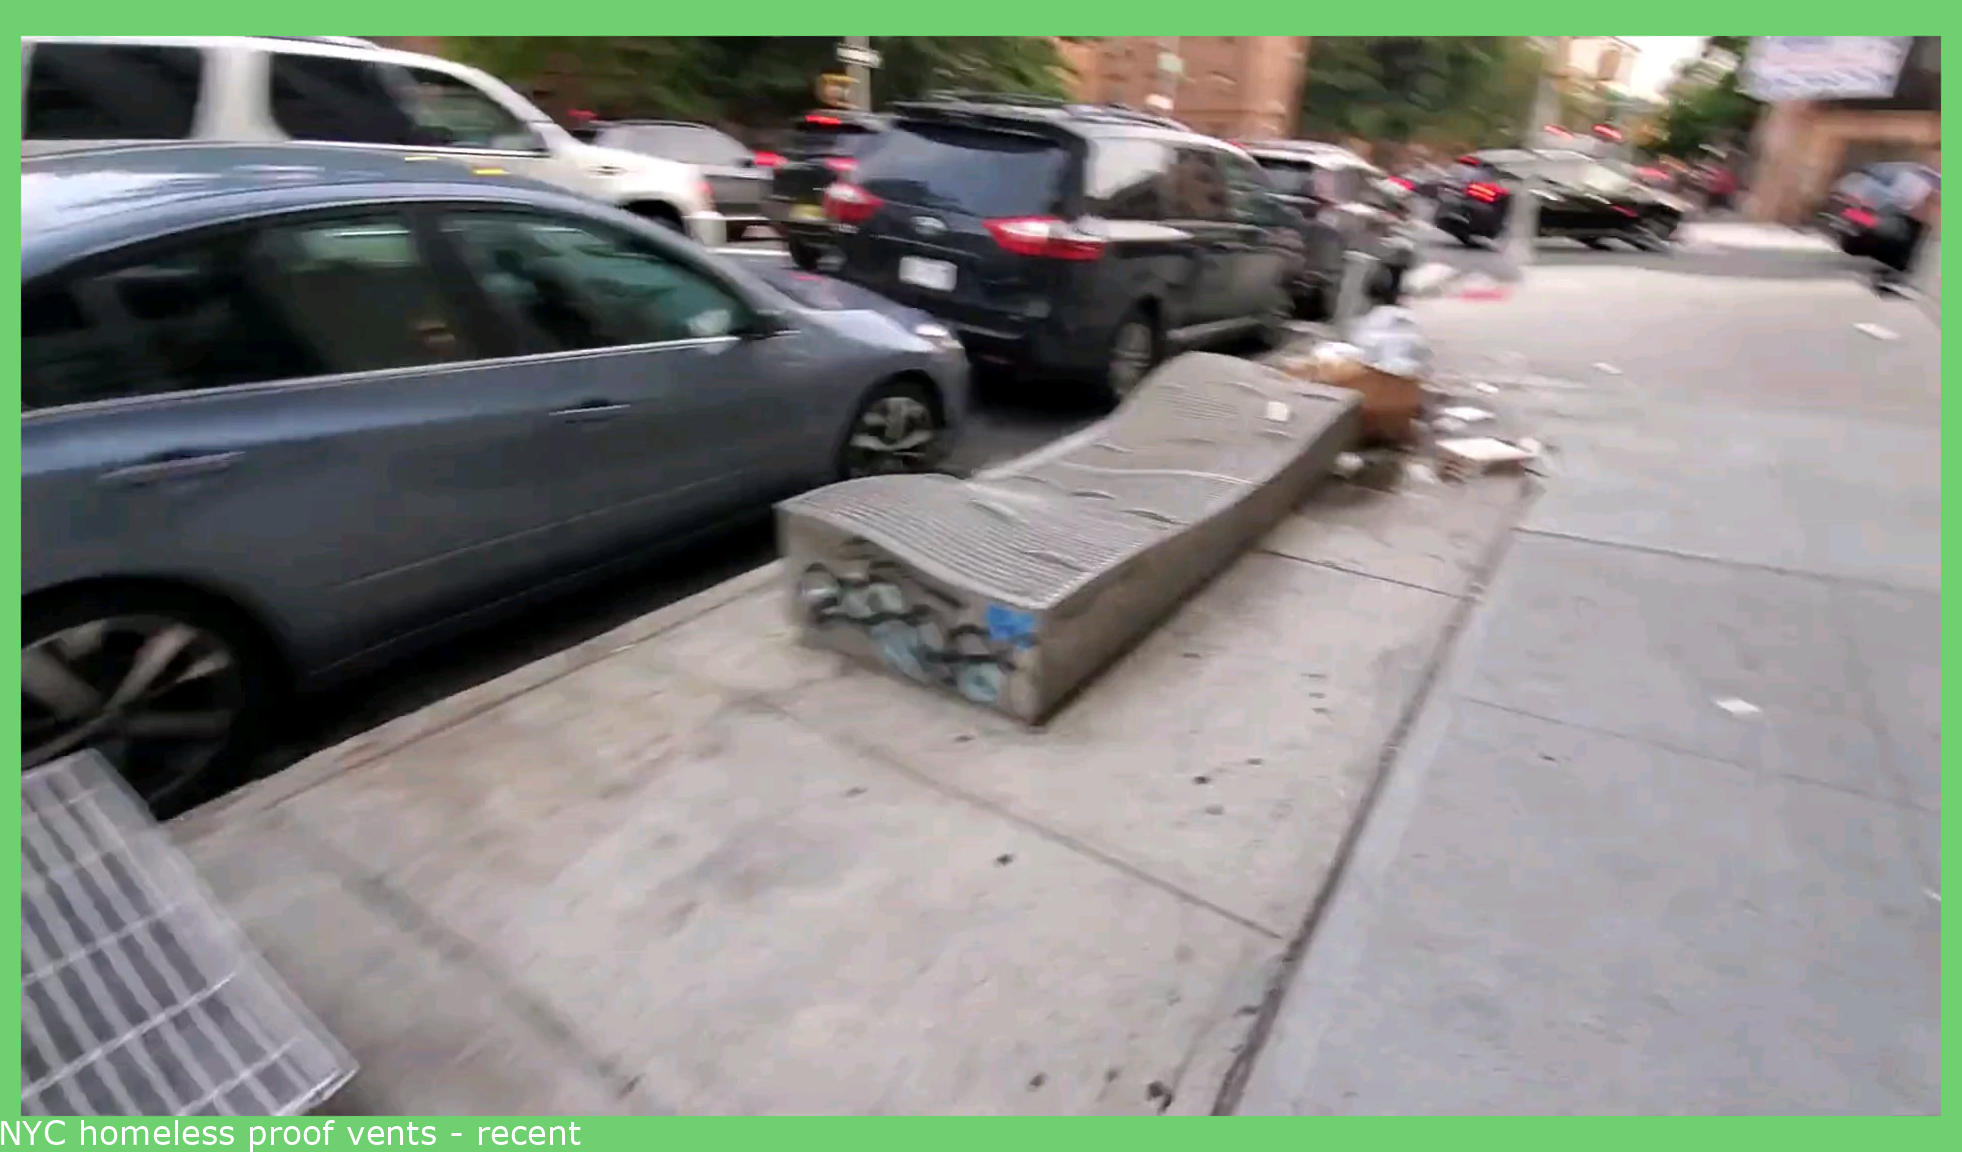 NYC homeless proof vents